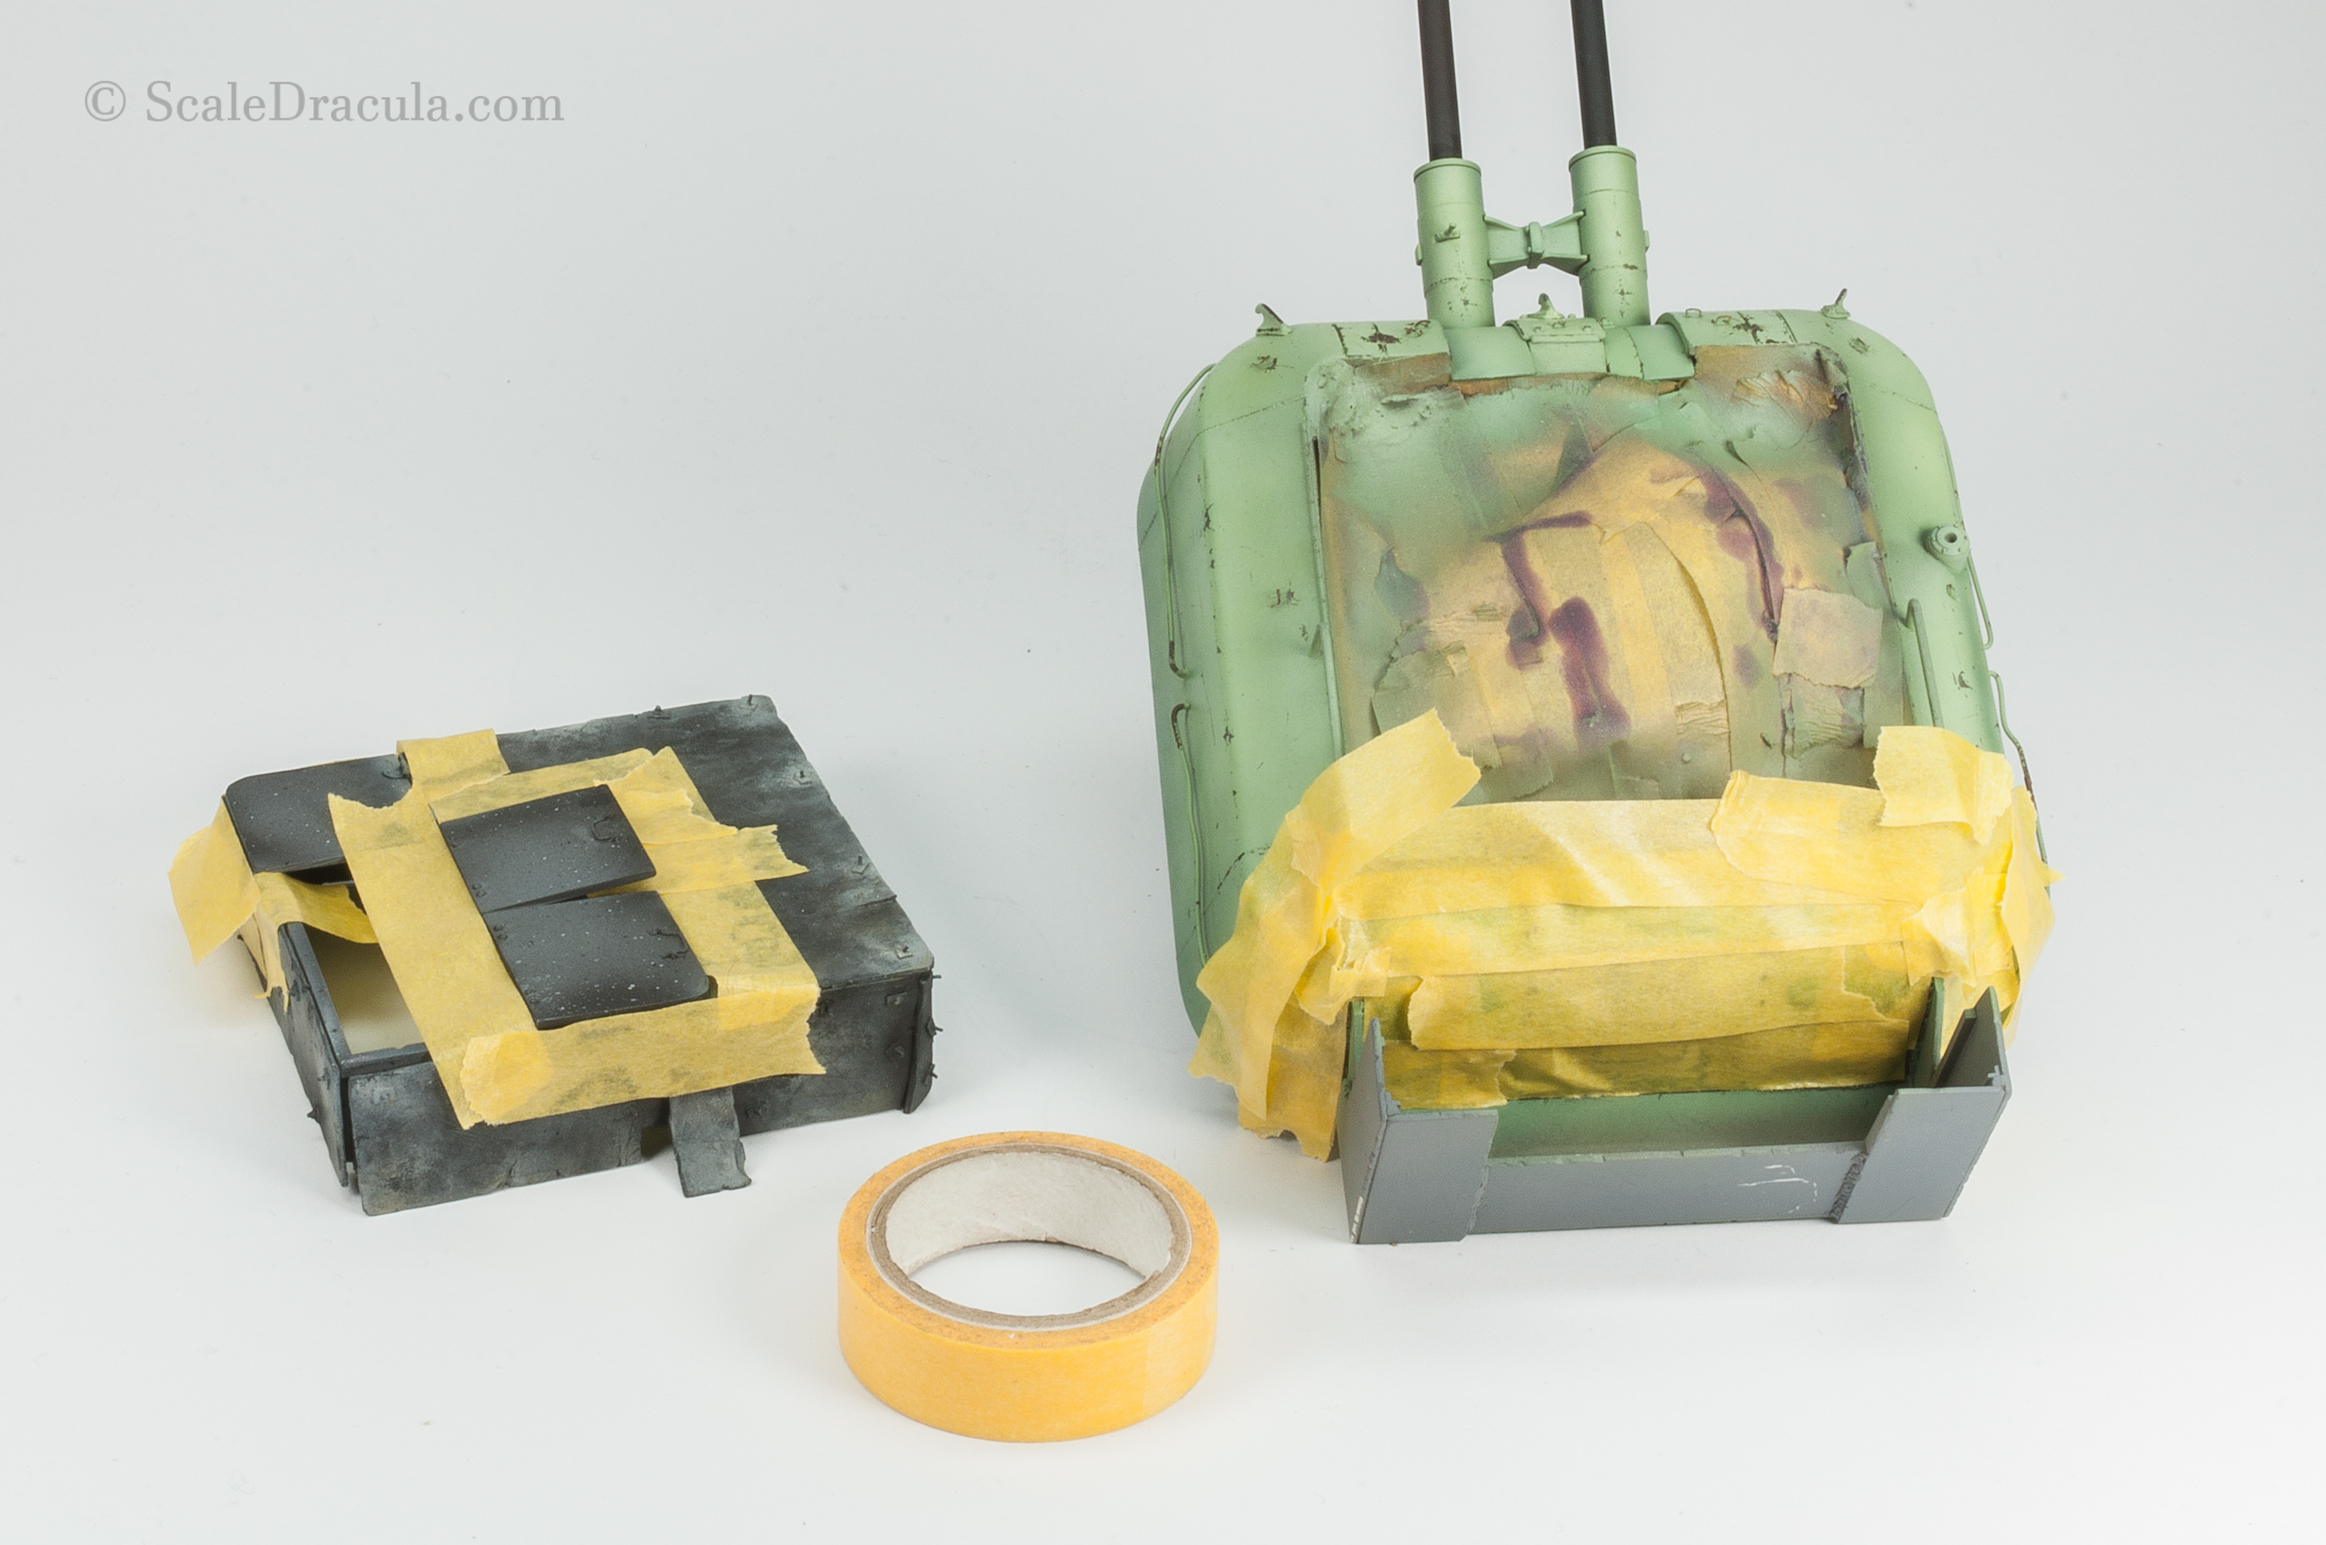 Securing the model with Tamiya masking tape, ZSU-57 by TAKOM